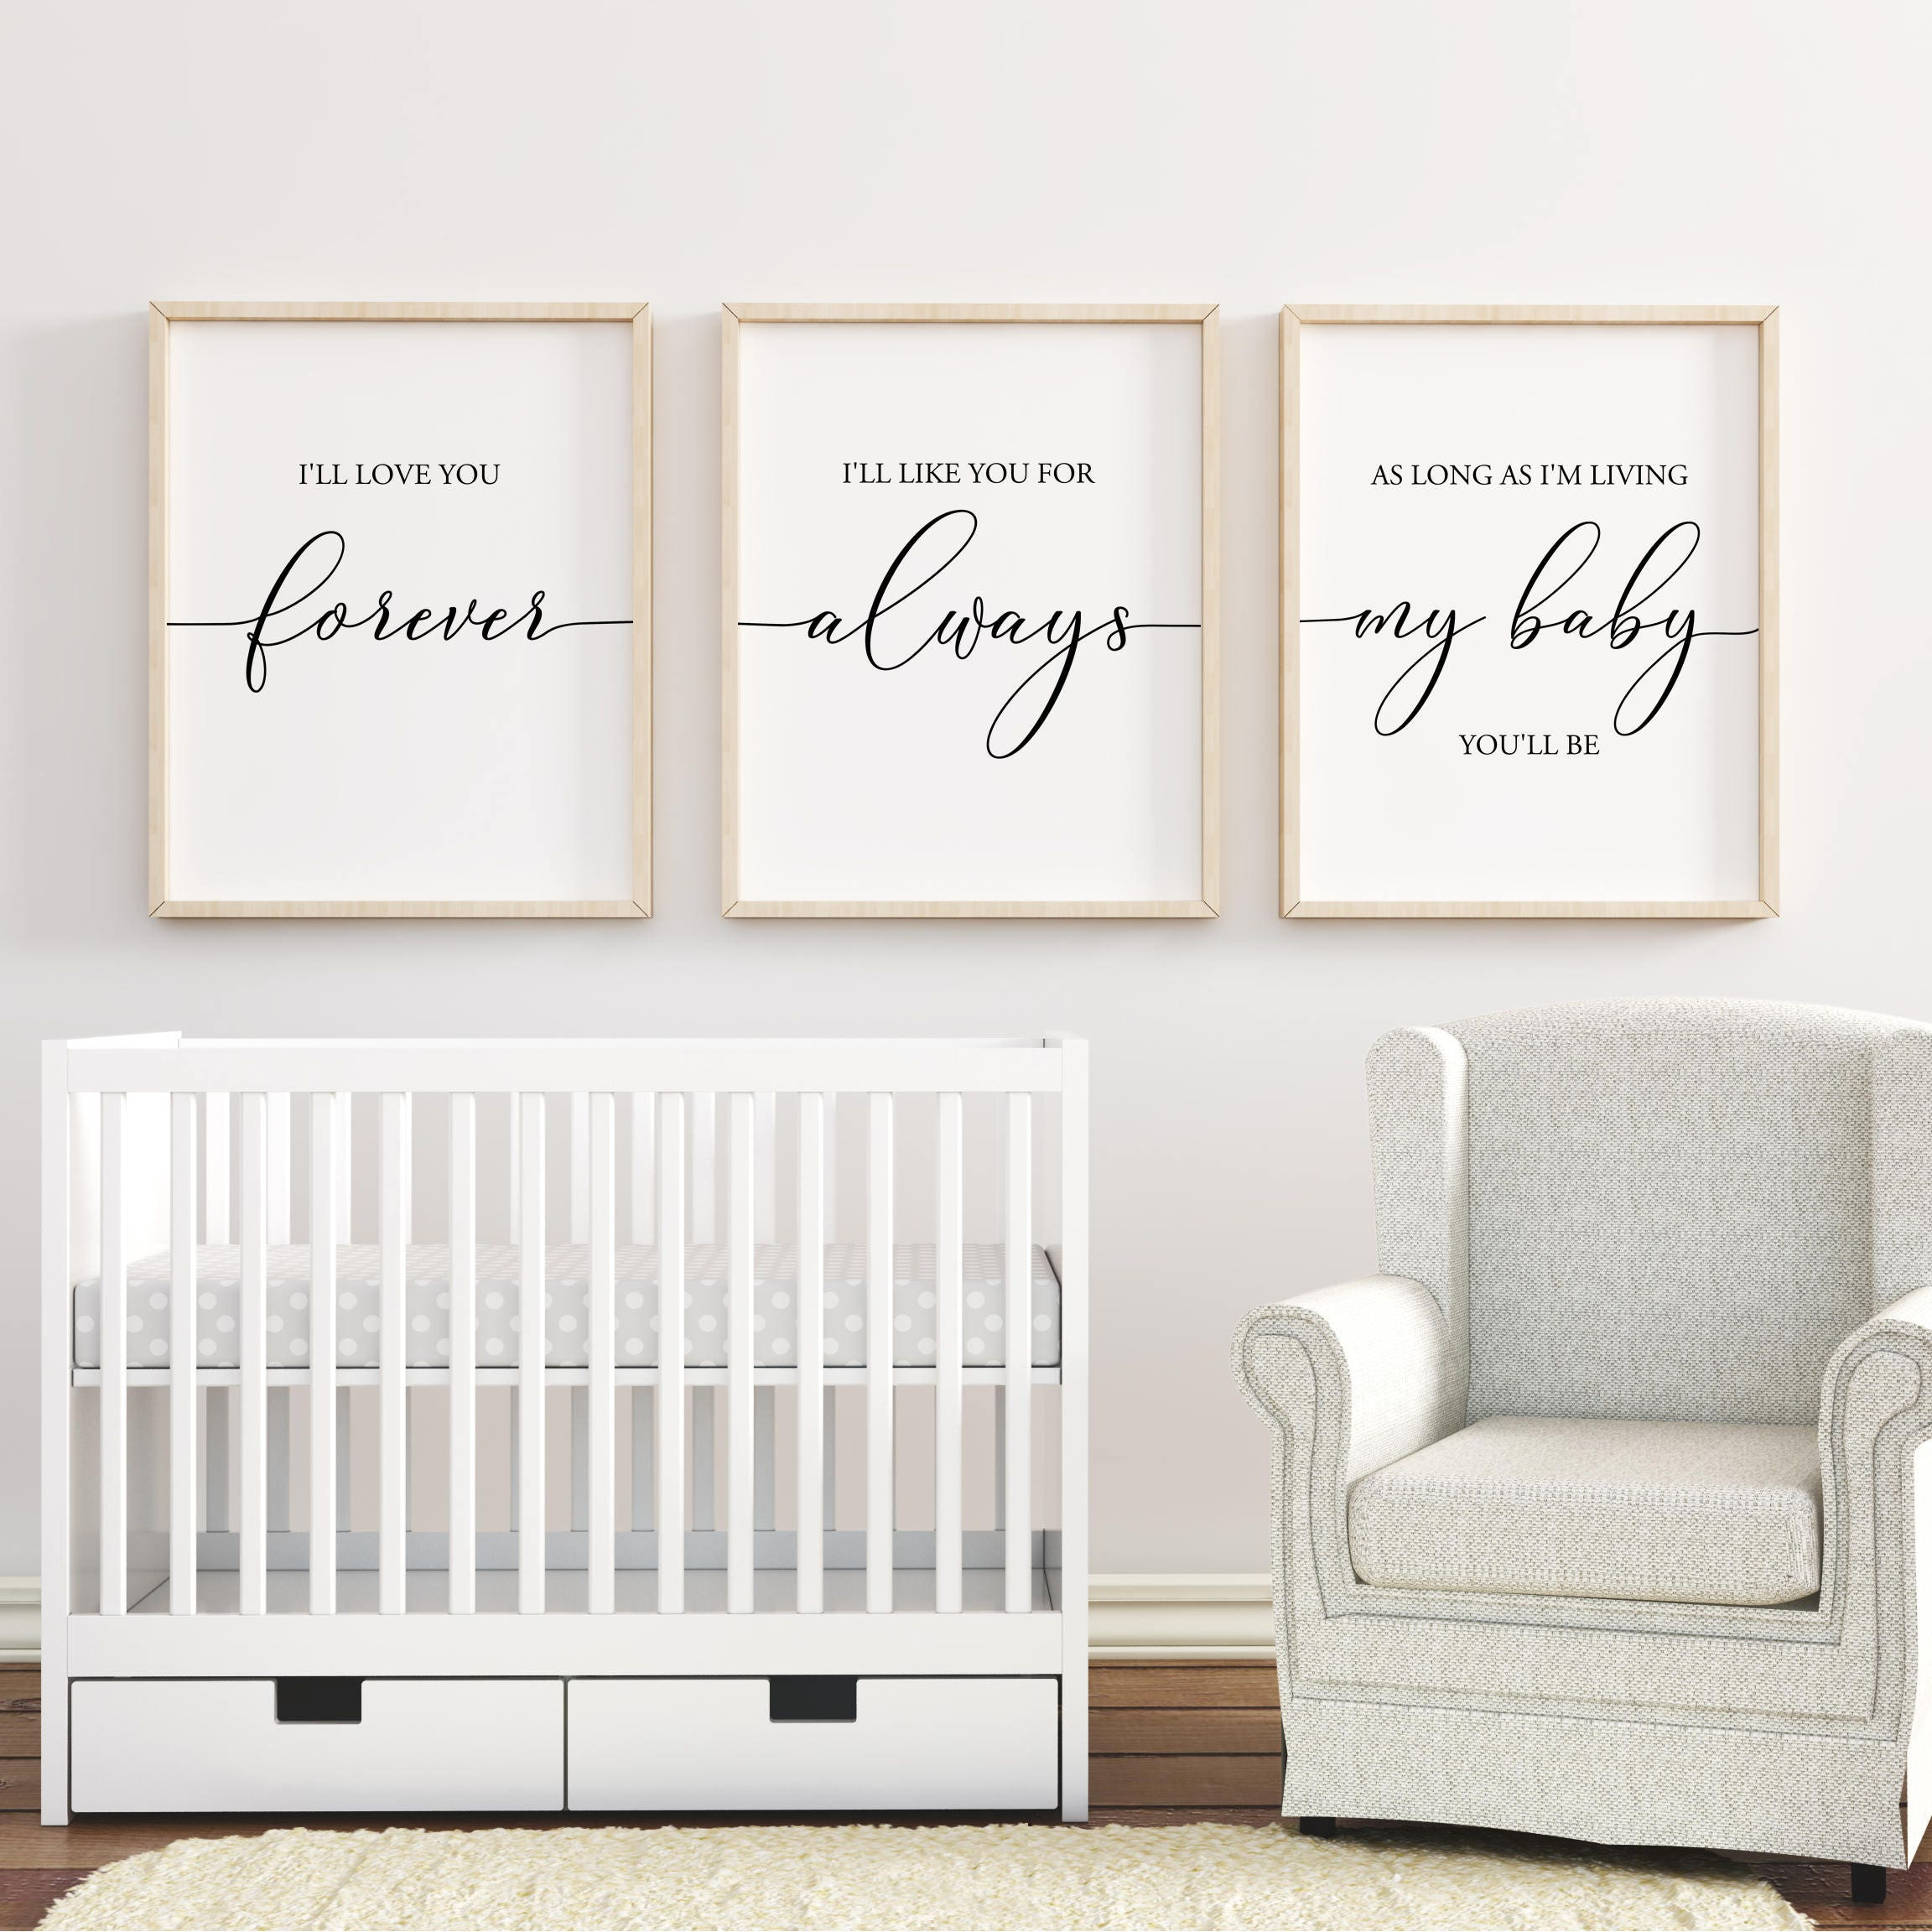 Nursery Ideas And Décor To Inspire You: I'll Love You Forever Printable Nursery Wall Art Nursery